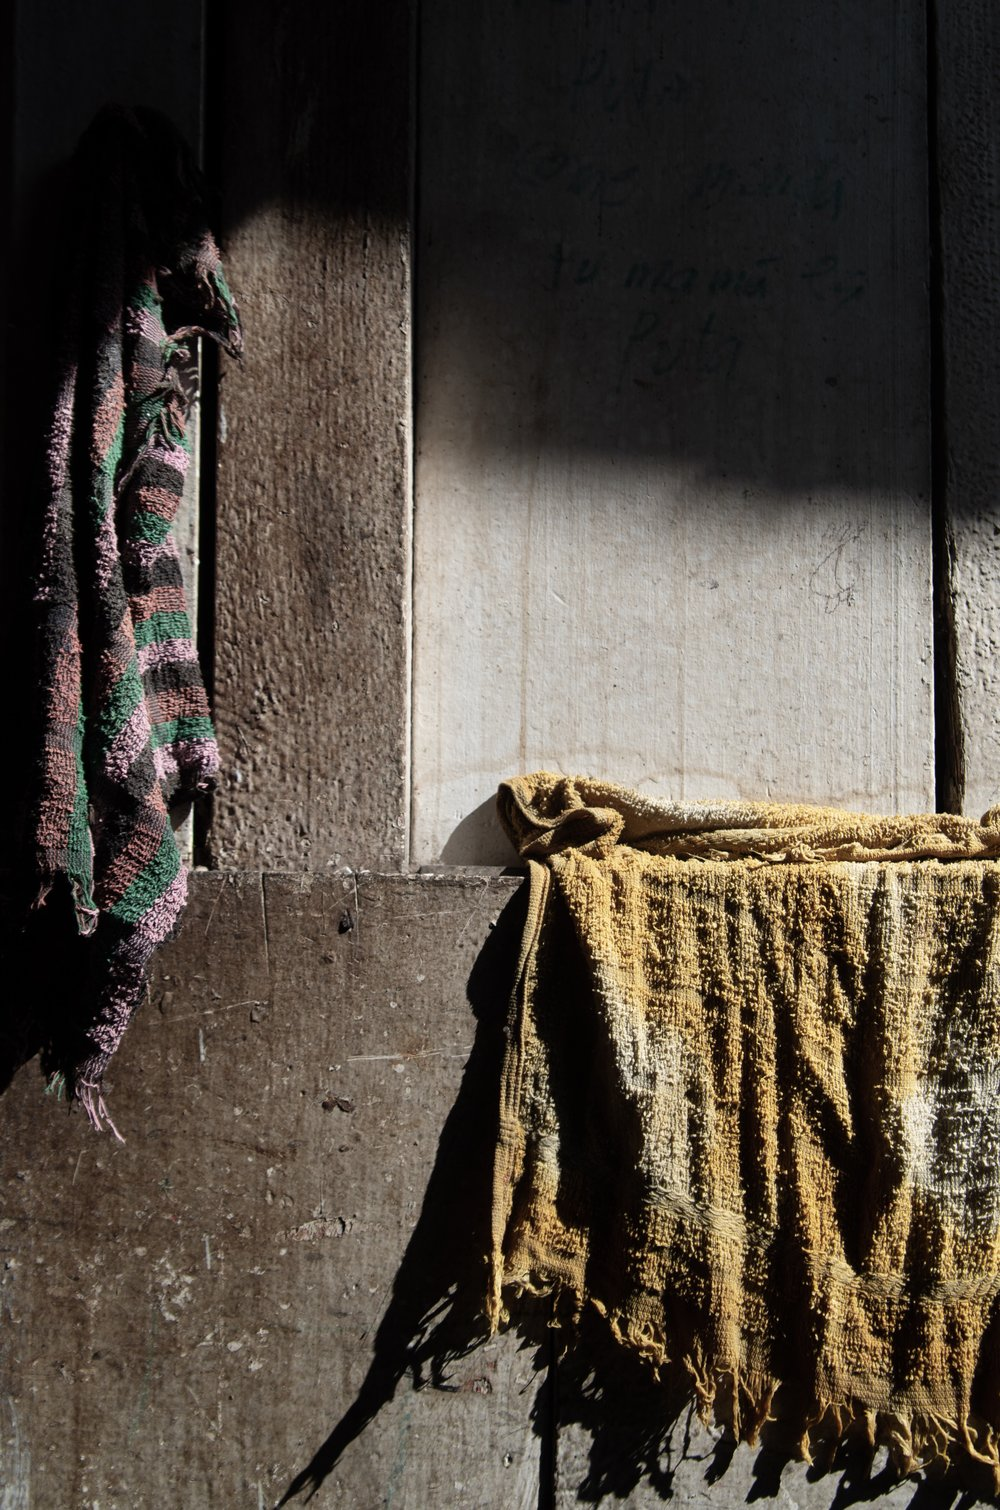 Beauty in the Mundane #1, Old Dish Cloths